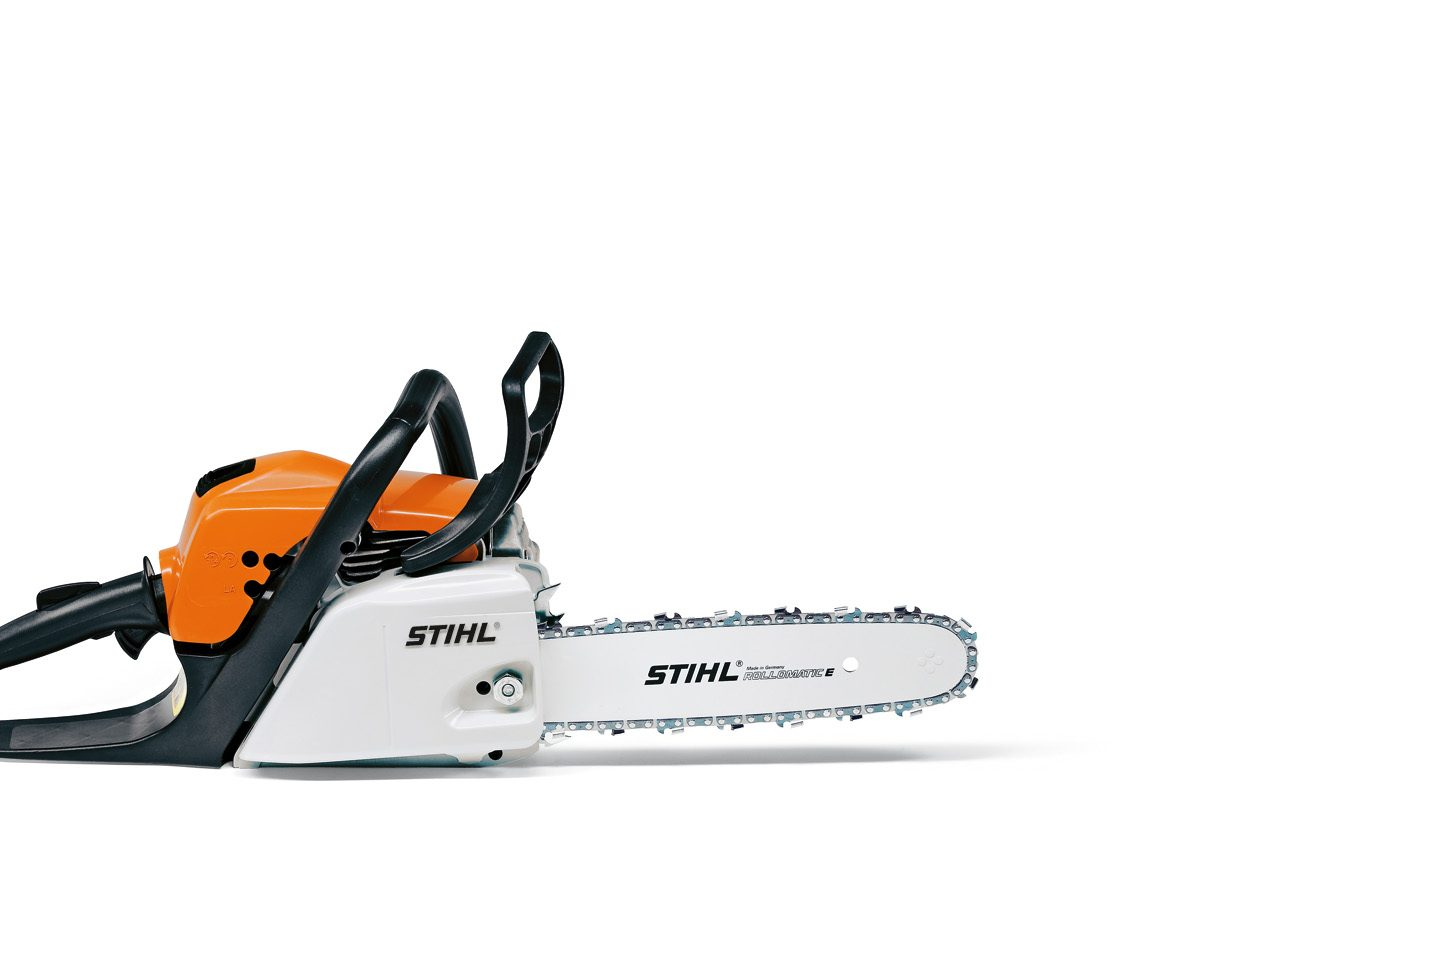 """MS 181 16"""" - 1.5 KW/2.0 HP DOMESTIC PETROL CHAINSAW"""